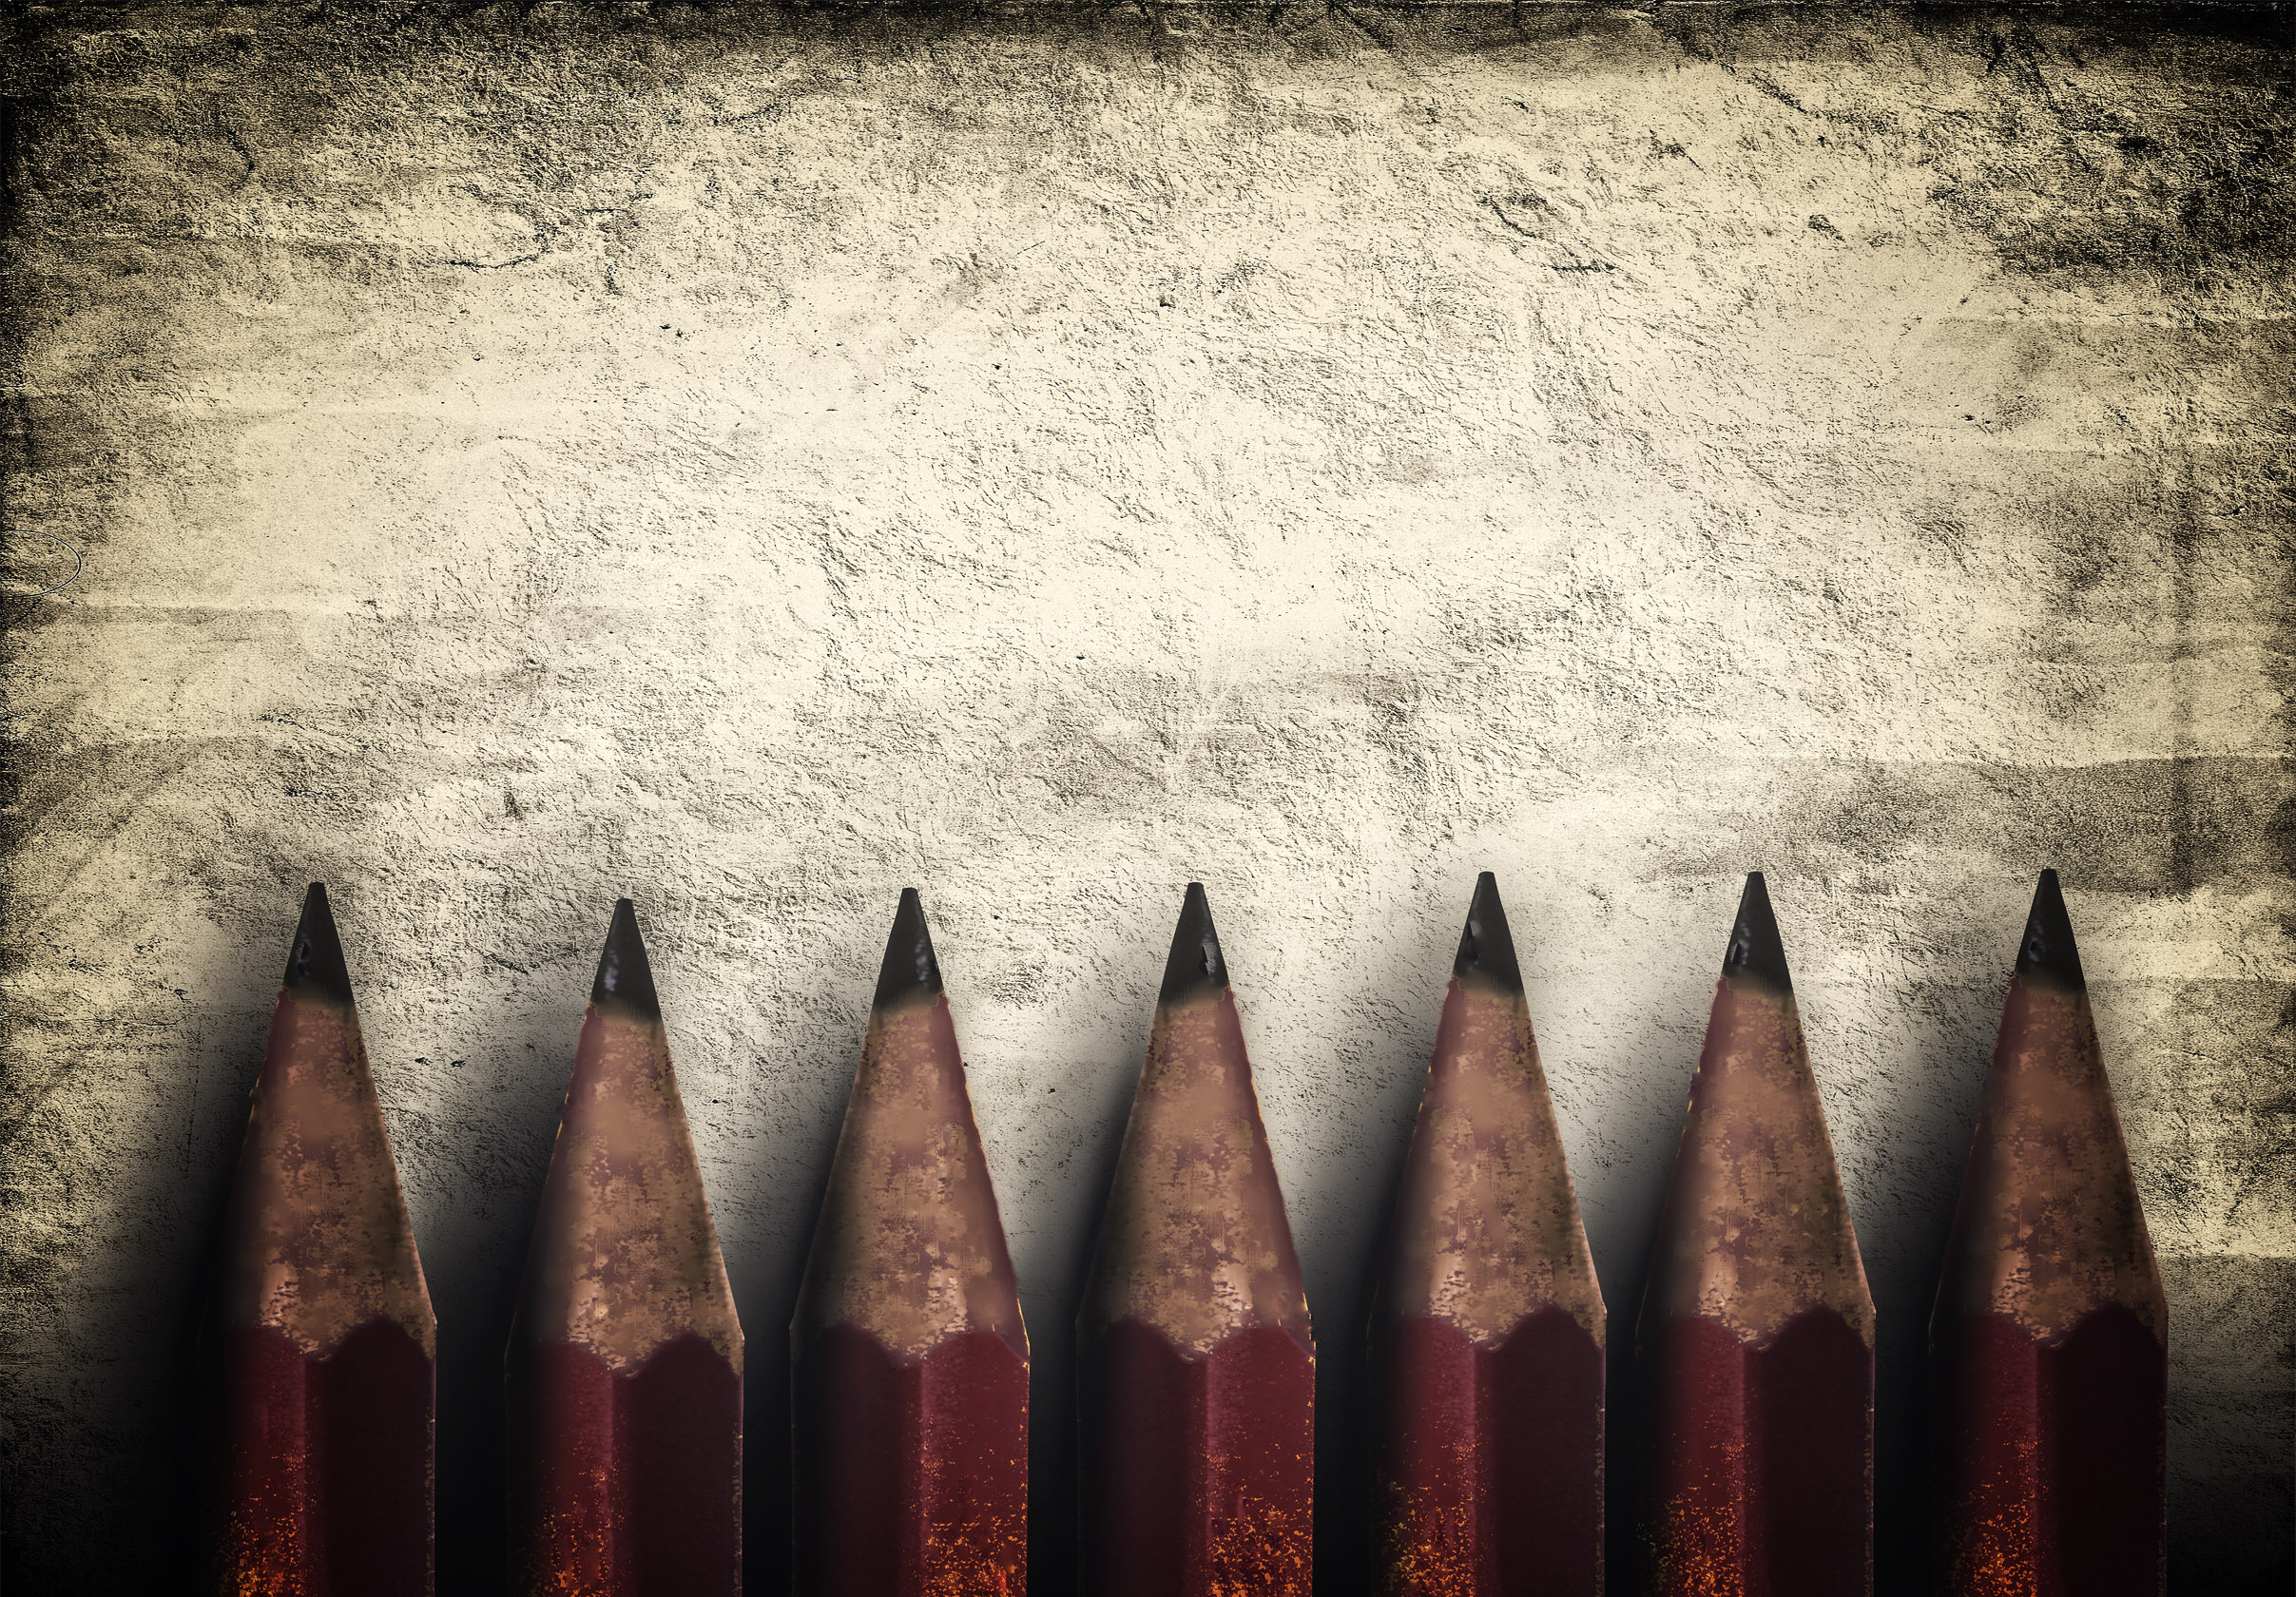 Illustration of vintage style red pencils over rough background photo